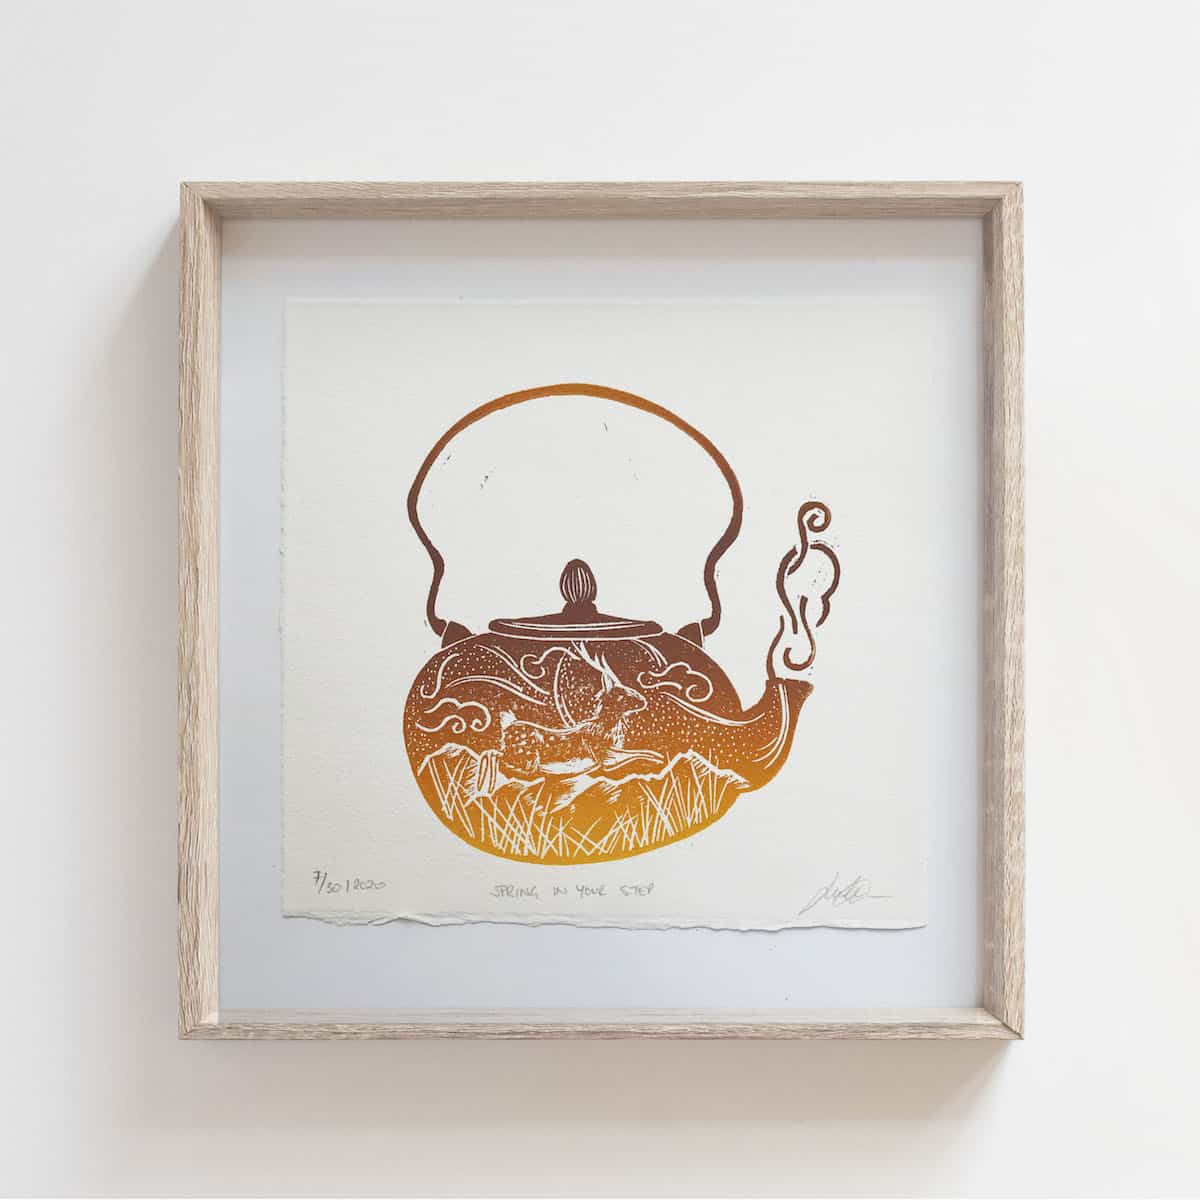 (Linoprint) Teapot Series: Spring In Your Step – By Jocelin Meredith Artwork